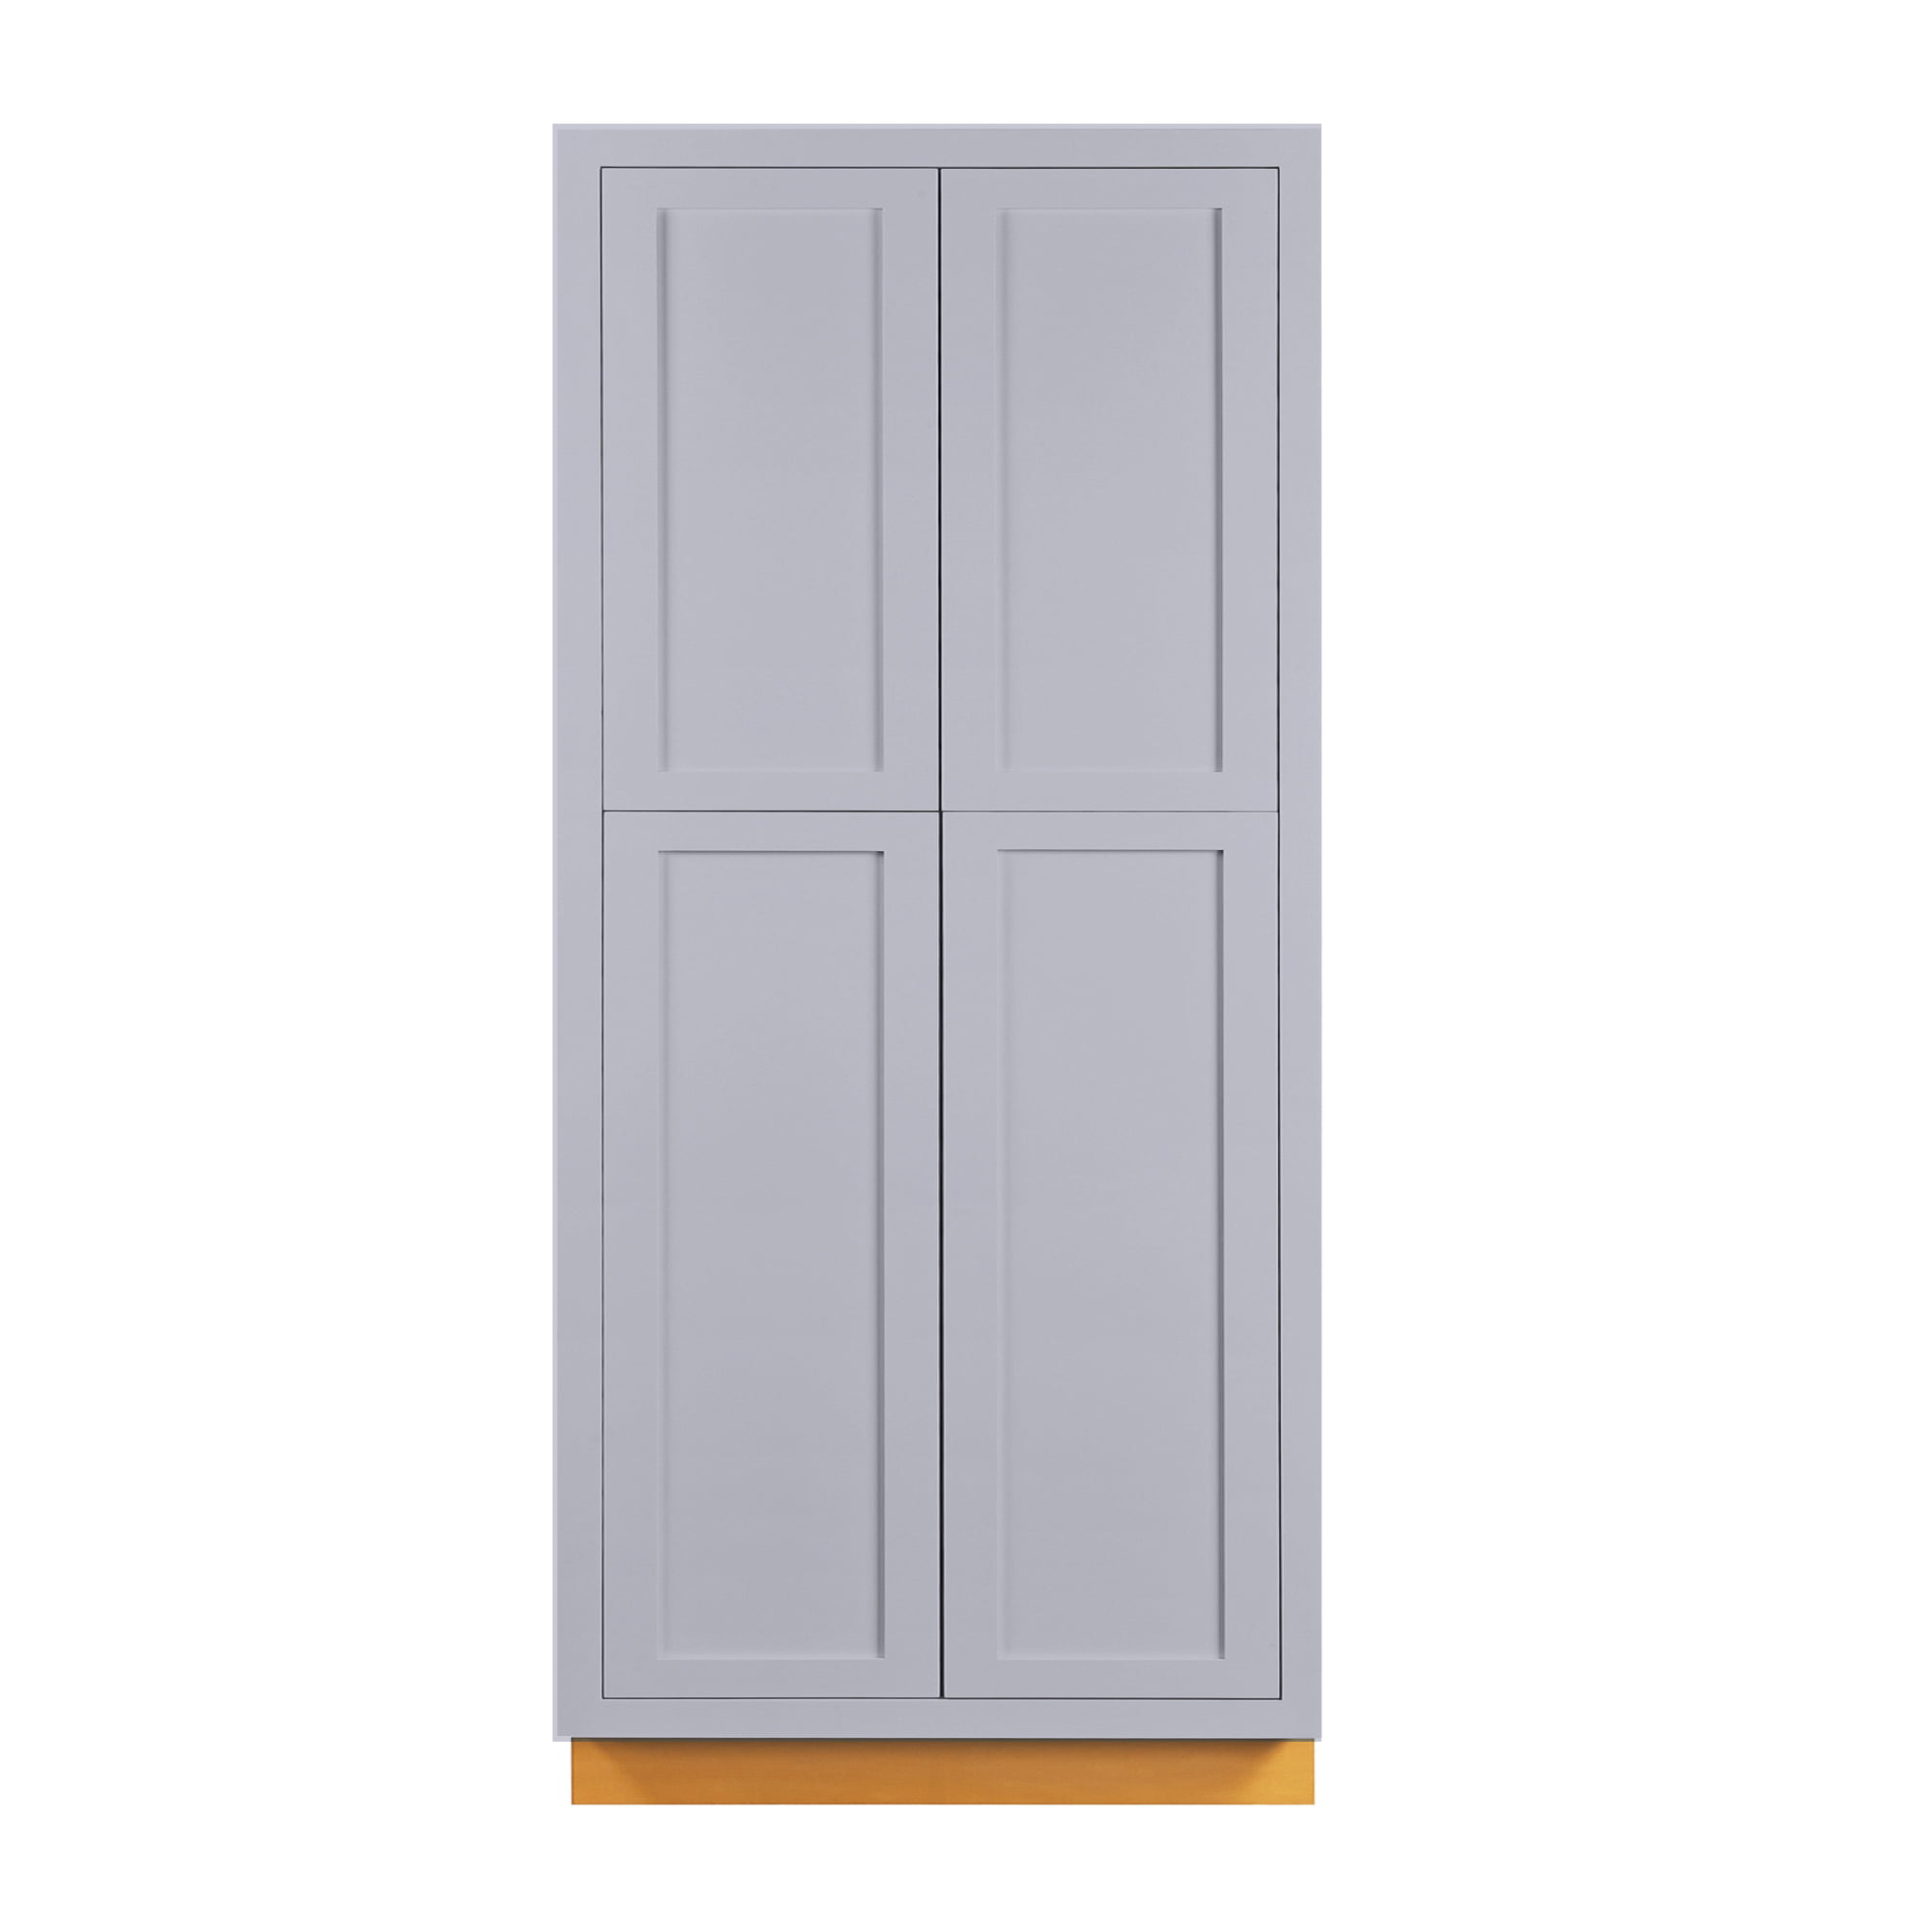 36 Wide 93 Tall Pantry Kitchen Cabinet Light Gray Inset Shaker Walmart Com Walmart Com